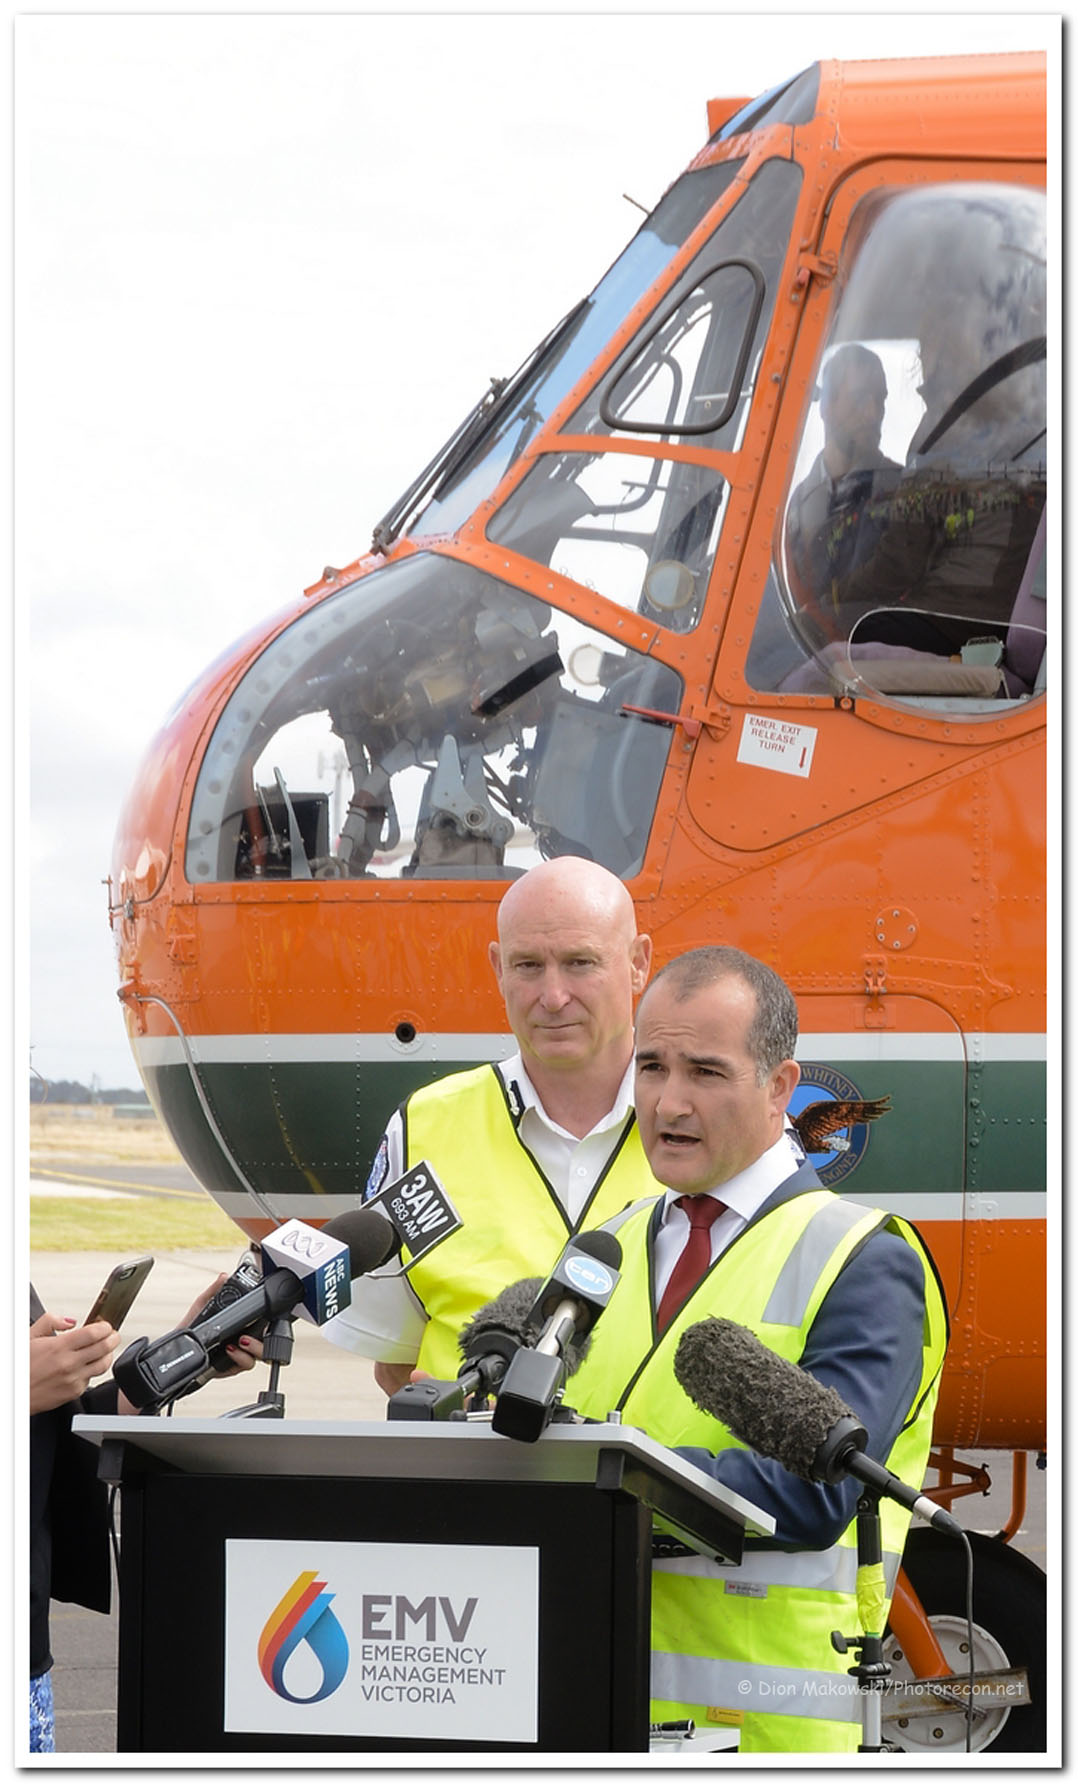 Commissioner Lapsley and Minister Merlino